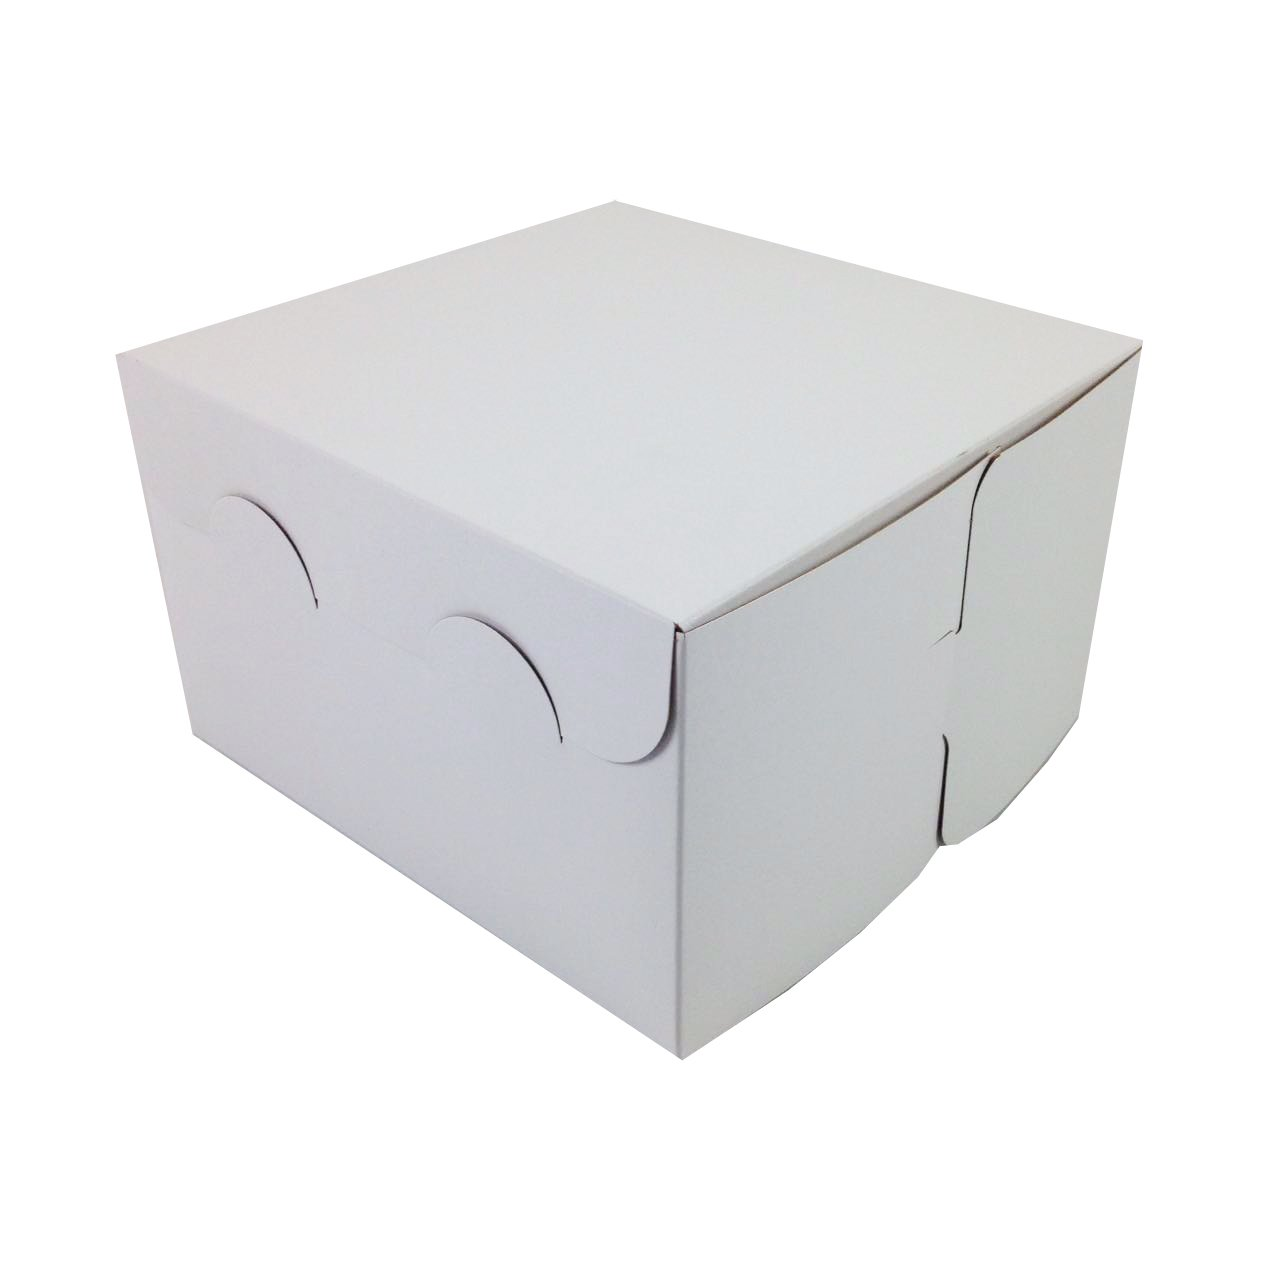 Black Cat Avenue 8'' x 8'' x 5'' White Paperboard Non-Window Cookie Pastries Cake Boxes Bakery Boxes, 5 Count